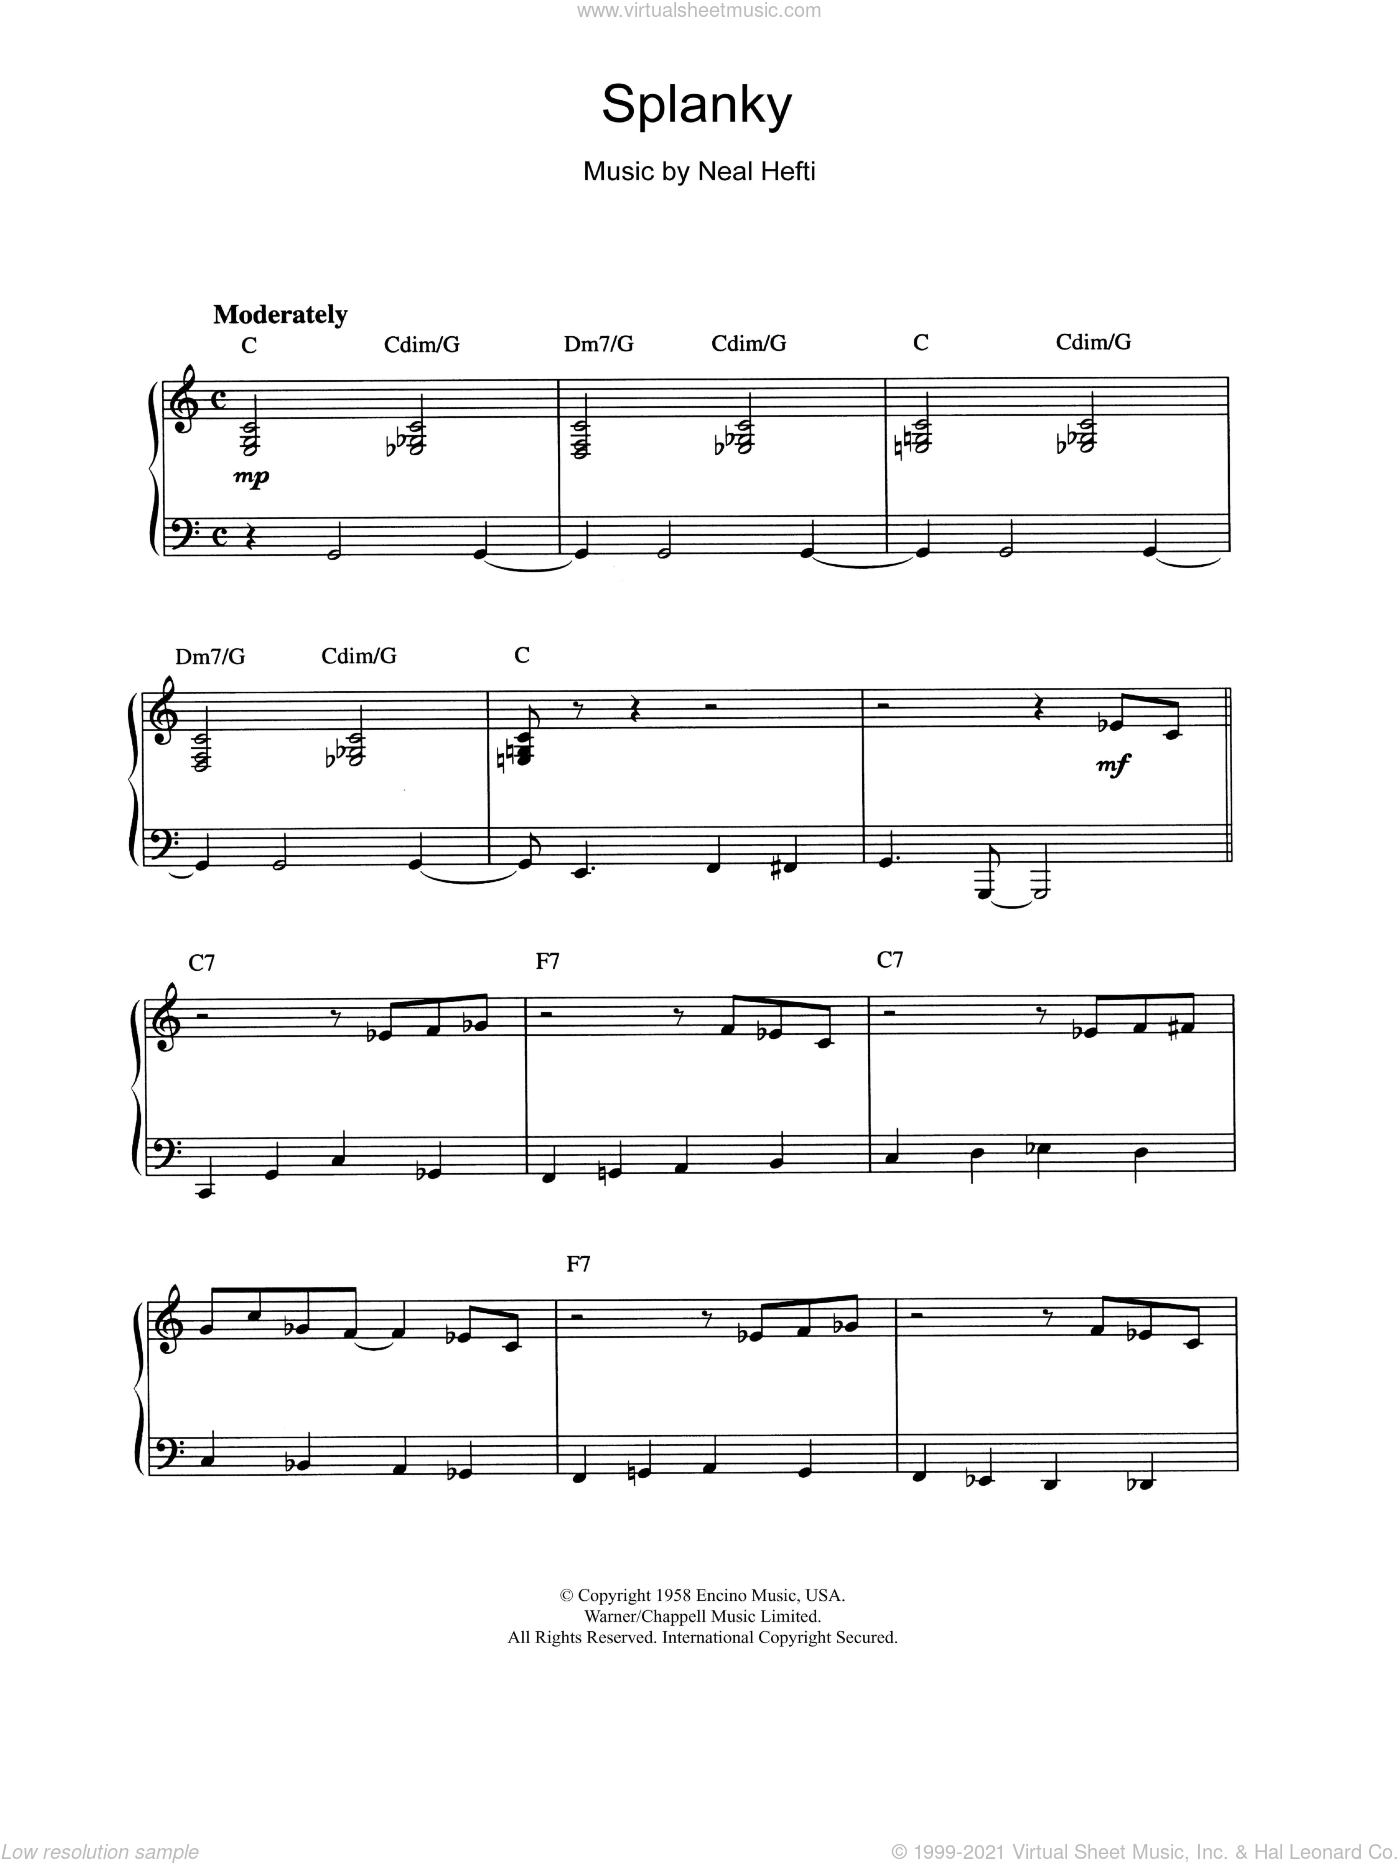 Splanky sheet music for piano solo by Count Basie